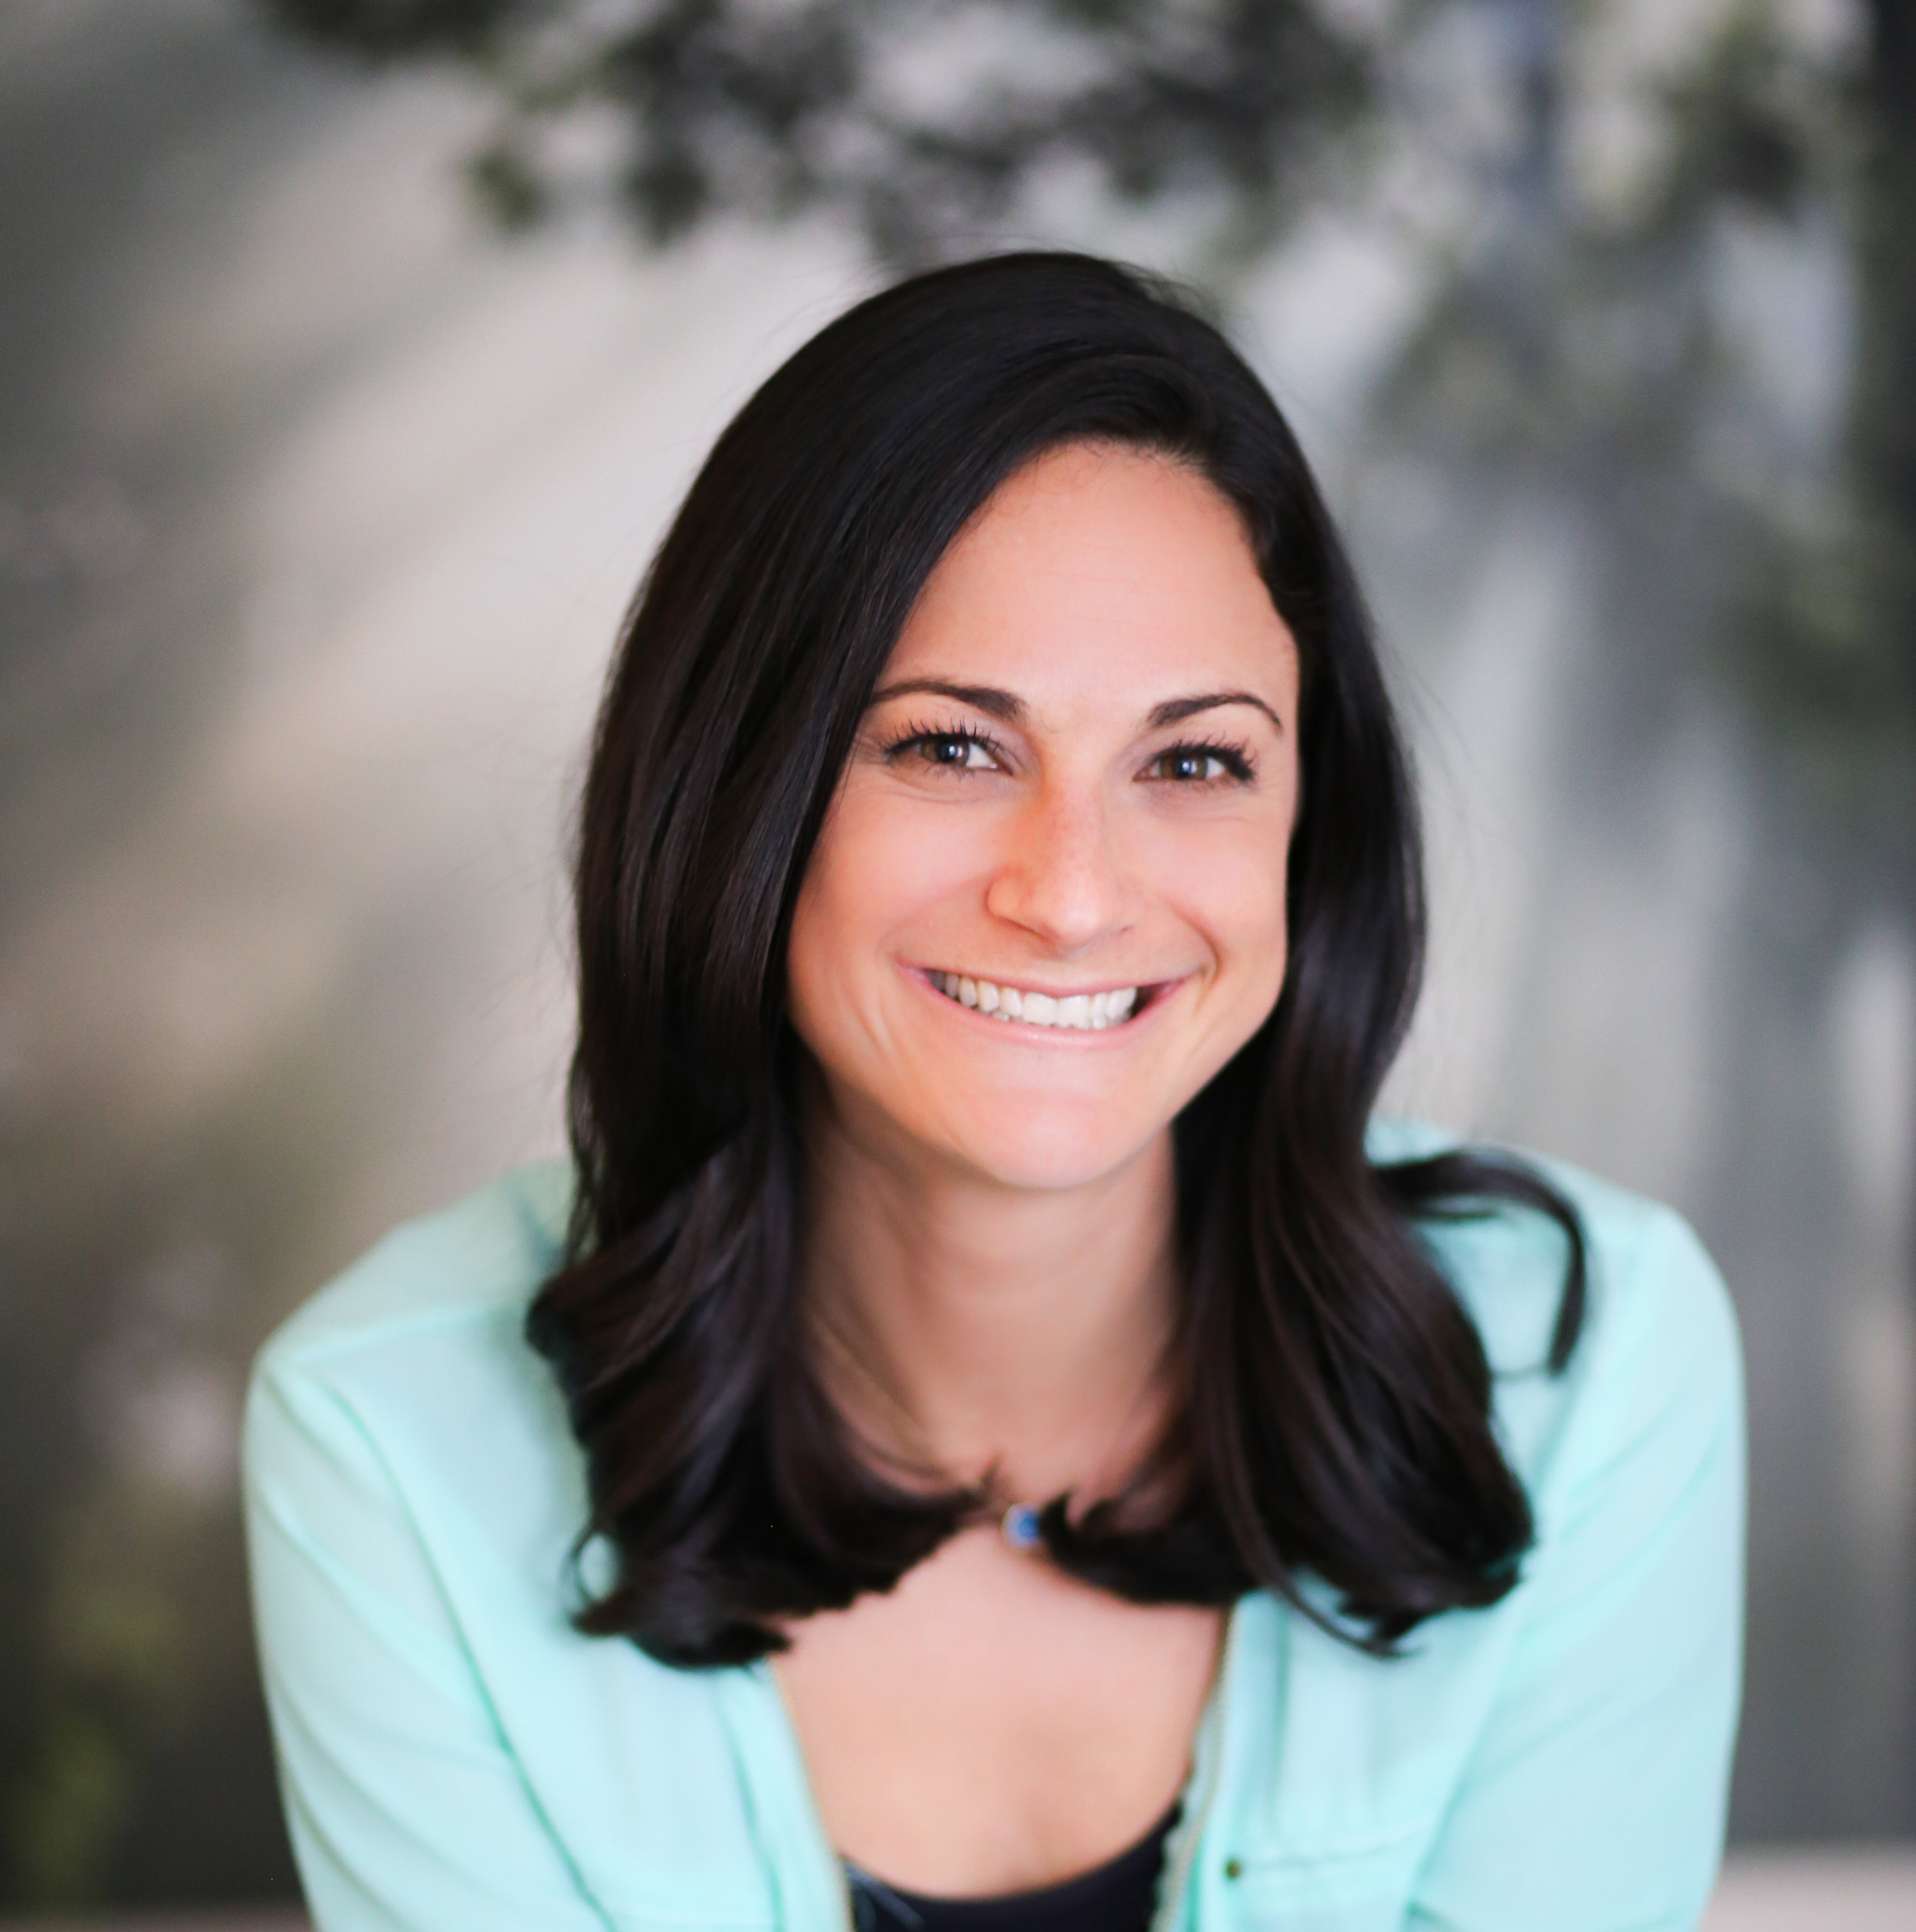 Kaylee Rutchik Stix, LCSW   Kaylee is an integrative psychotherapist and yoga teacher providing individual psychotherapy.   Specialties: anxiety, depression, transitions, relationship and dating, young adults